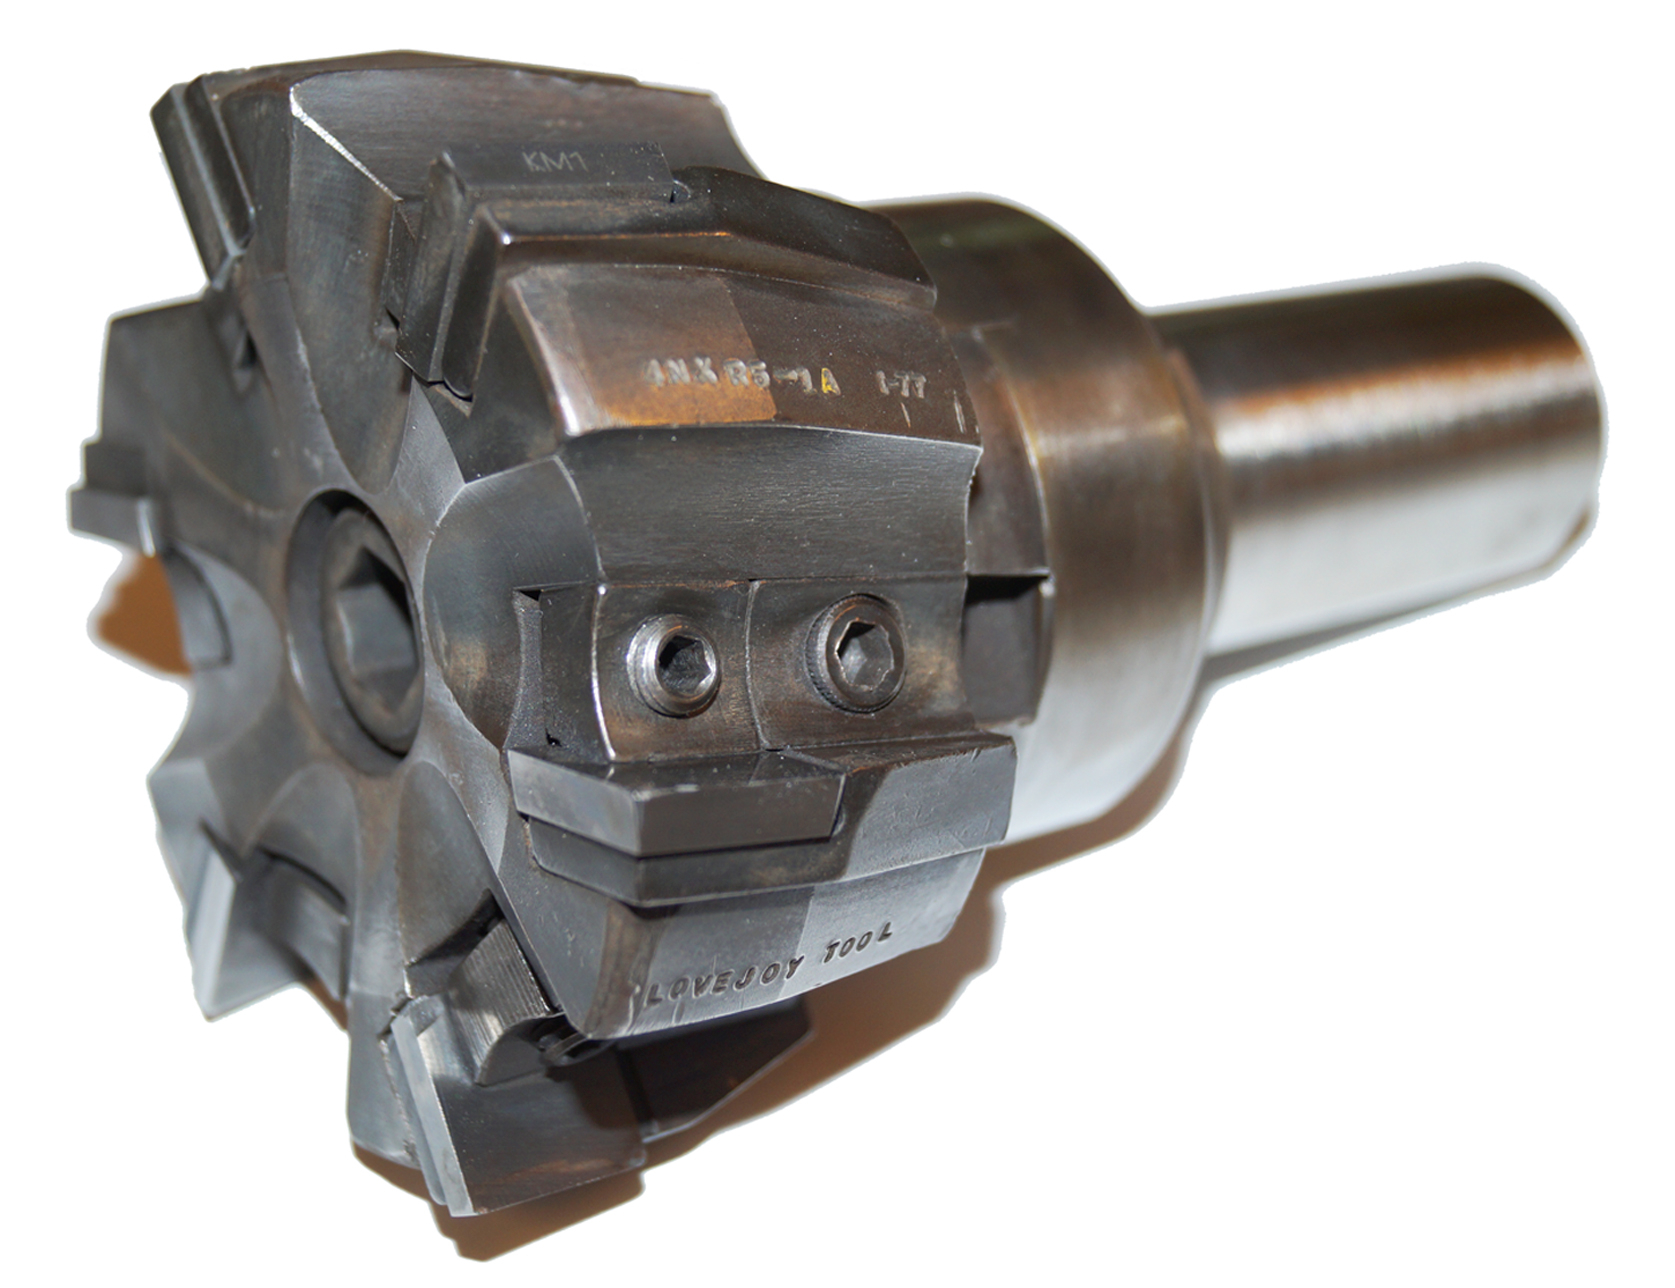 4 Inch Shell Mill with SMH, Lovejoy, Carbide Insert